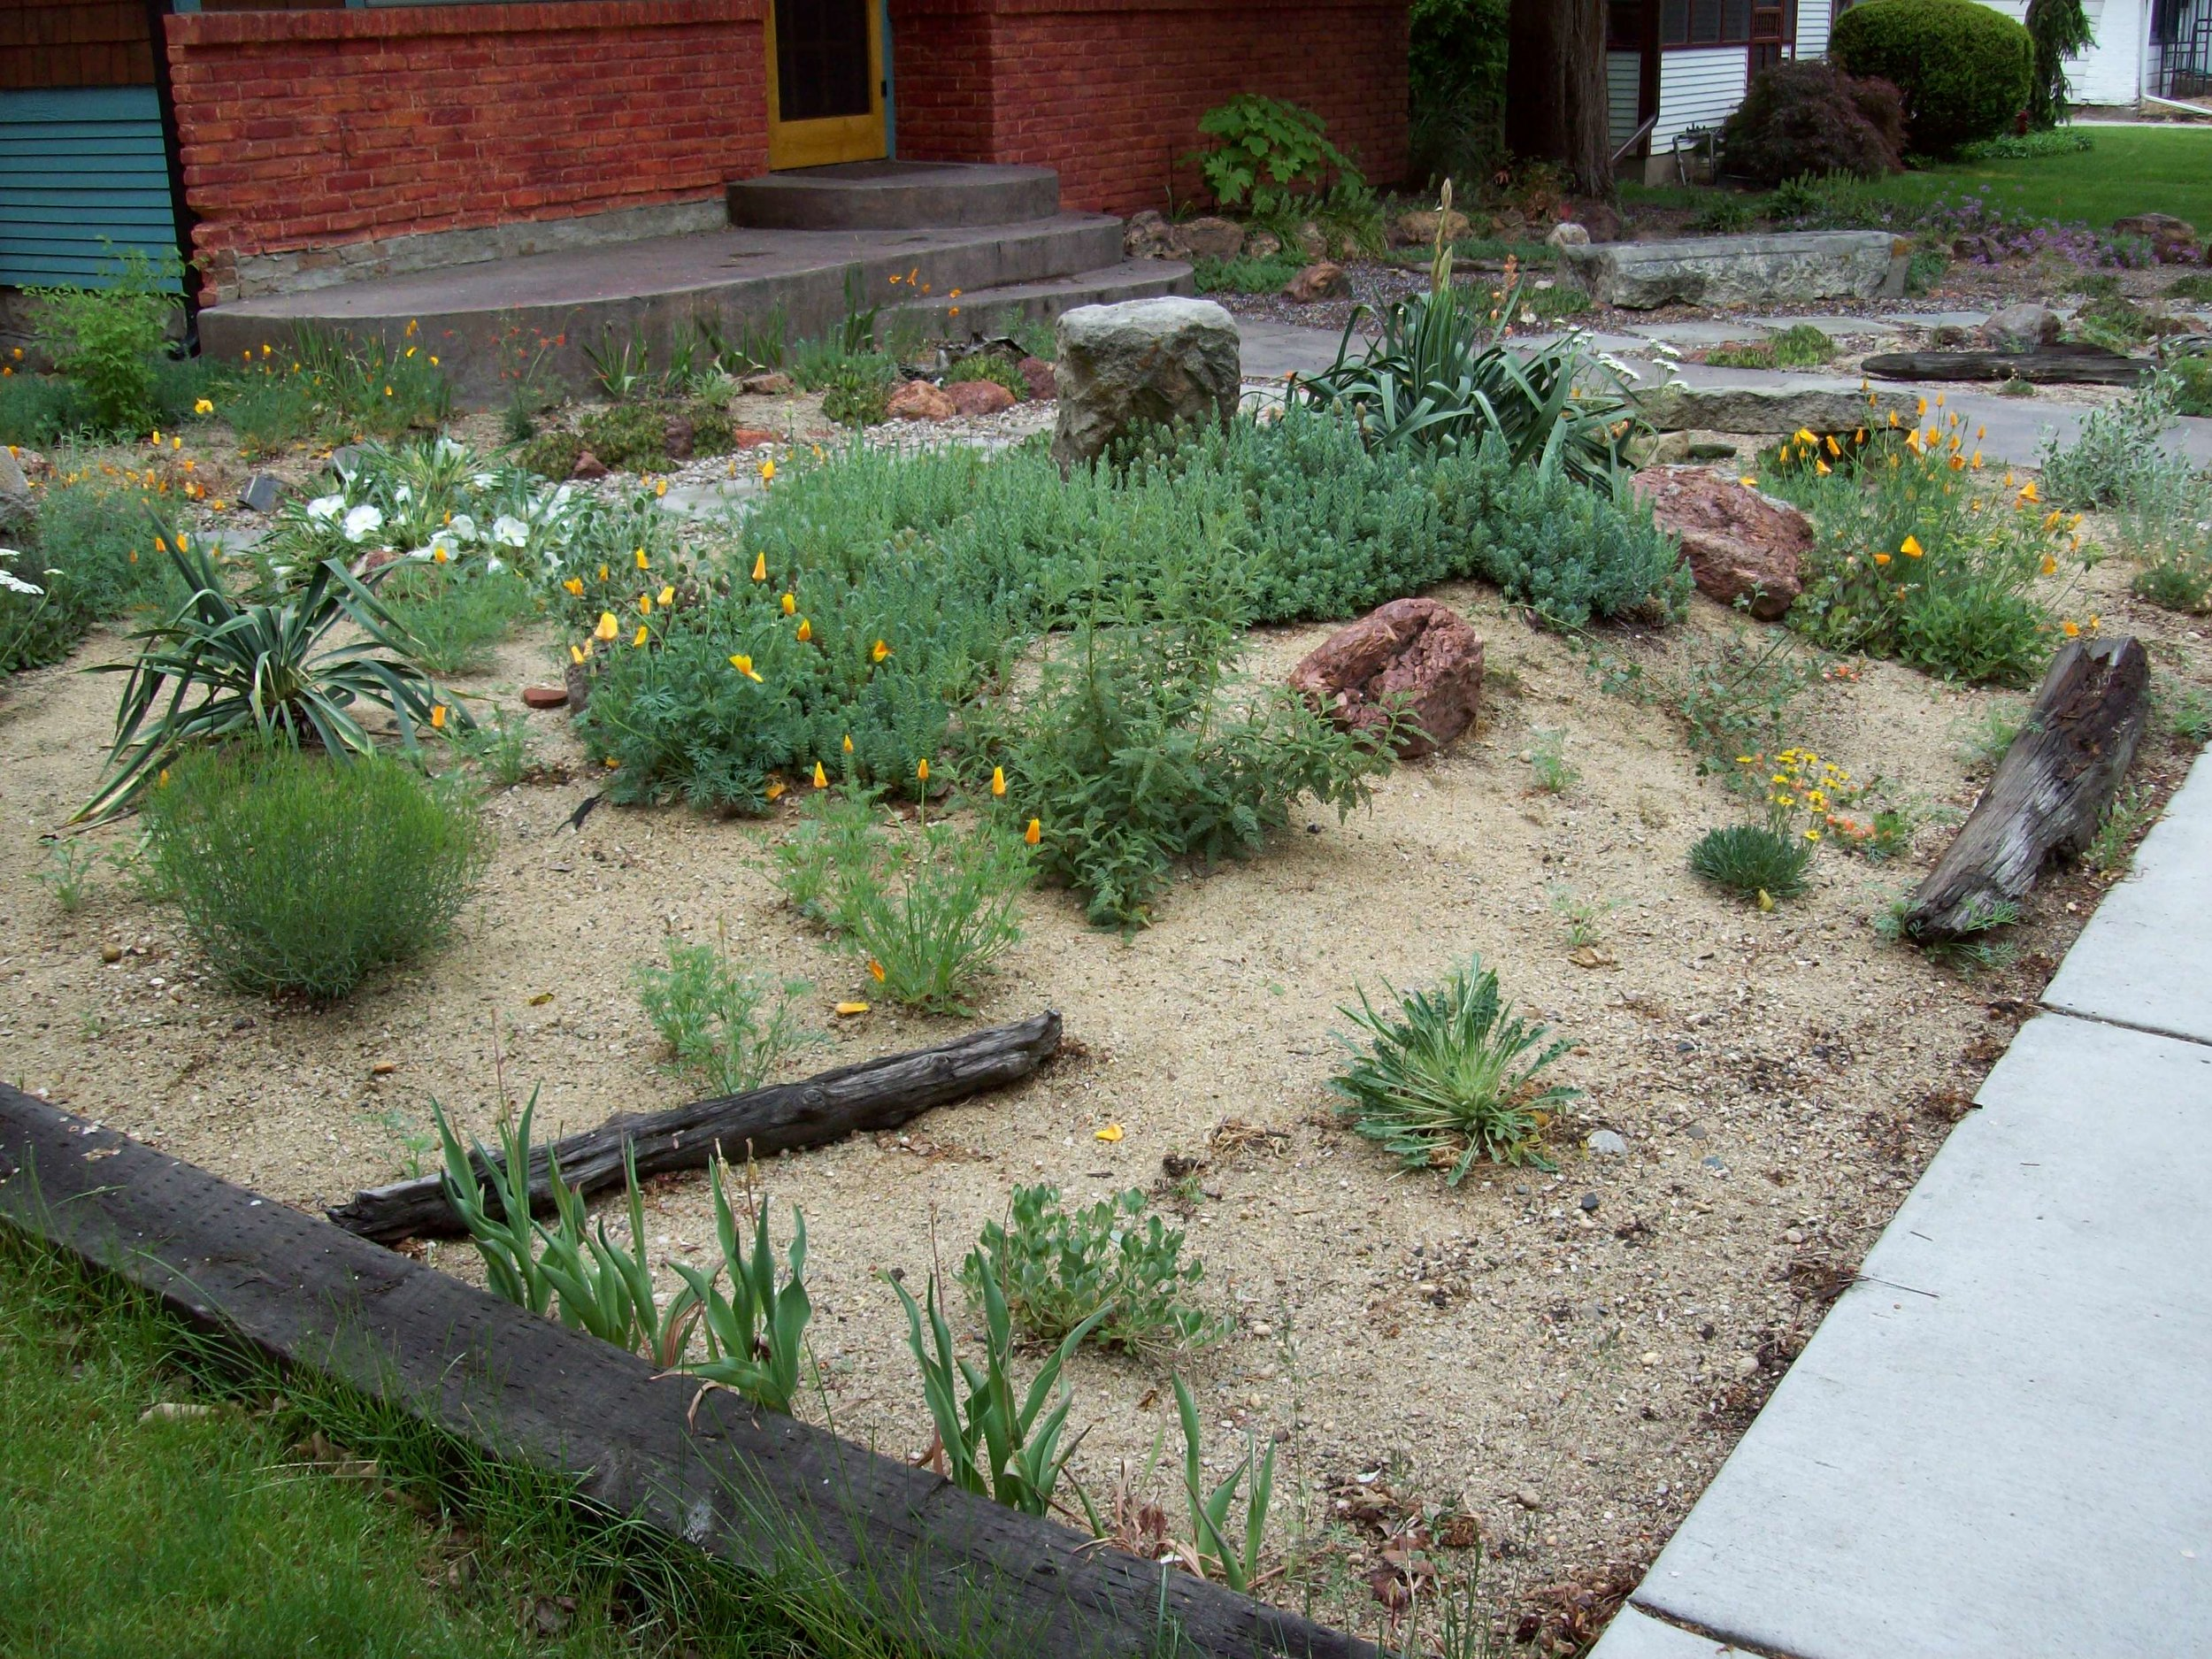 Sand Mulch - Sand mulch has a really beautiful soft look. This sand mulch was put on top of weed barrier cloth. It's important to keep the sand free of leaf litter and debris with regular raking. Note: Sand can be a really excellent medium for germinating weed seeds.